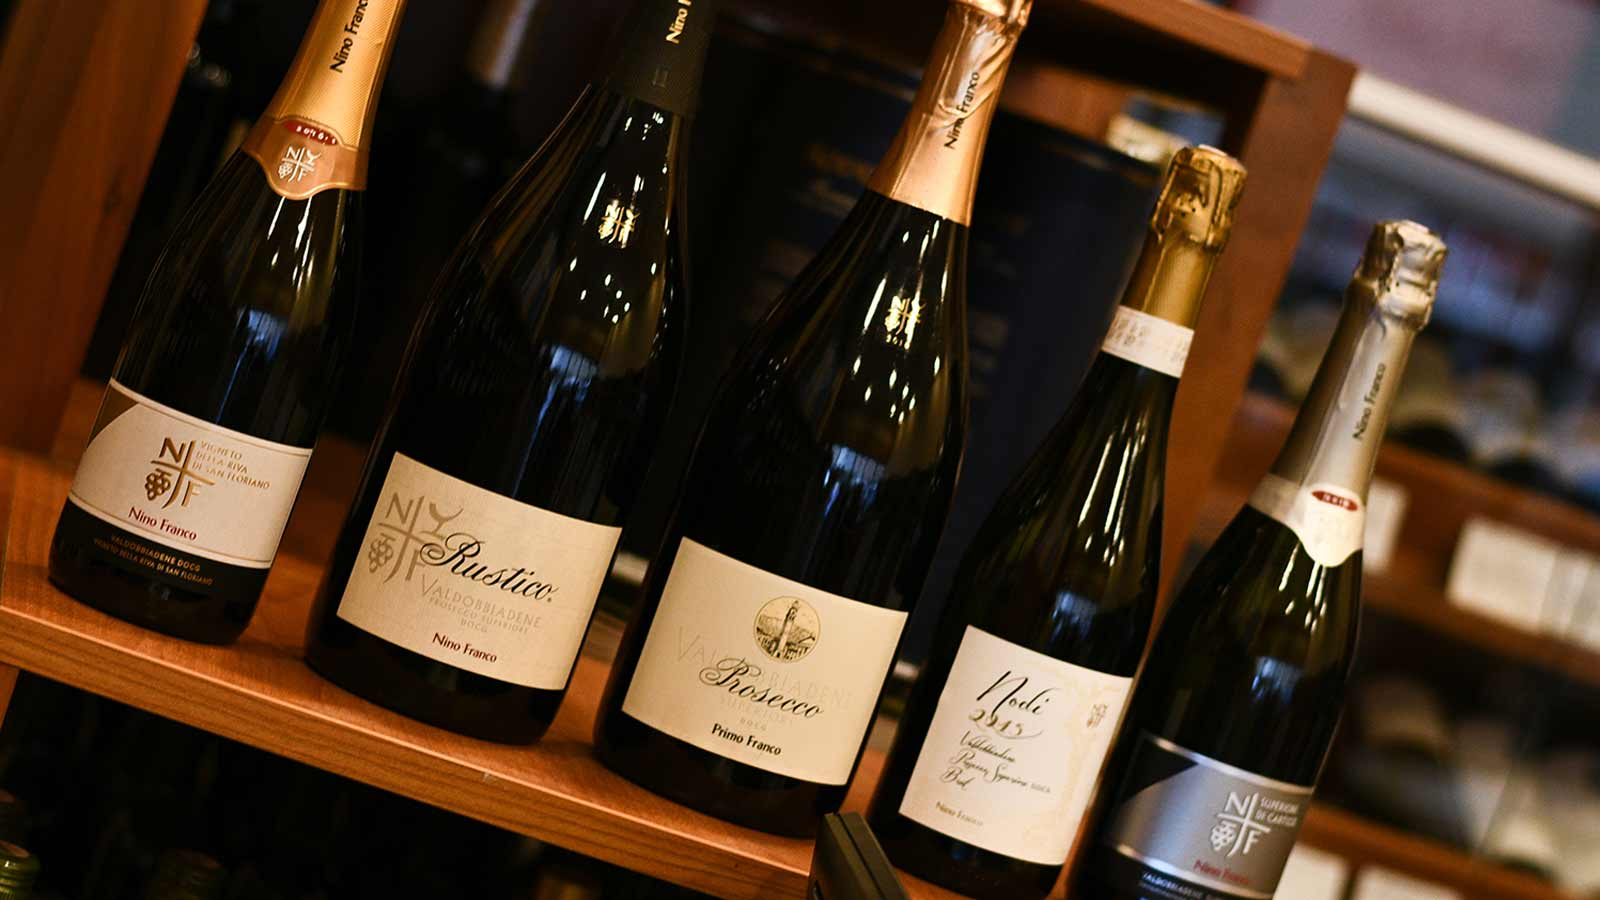 FBIC expands its Prosecco portfolio